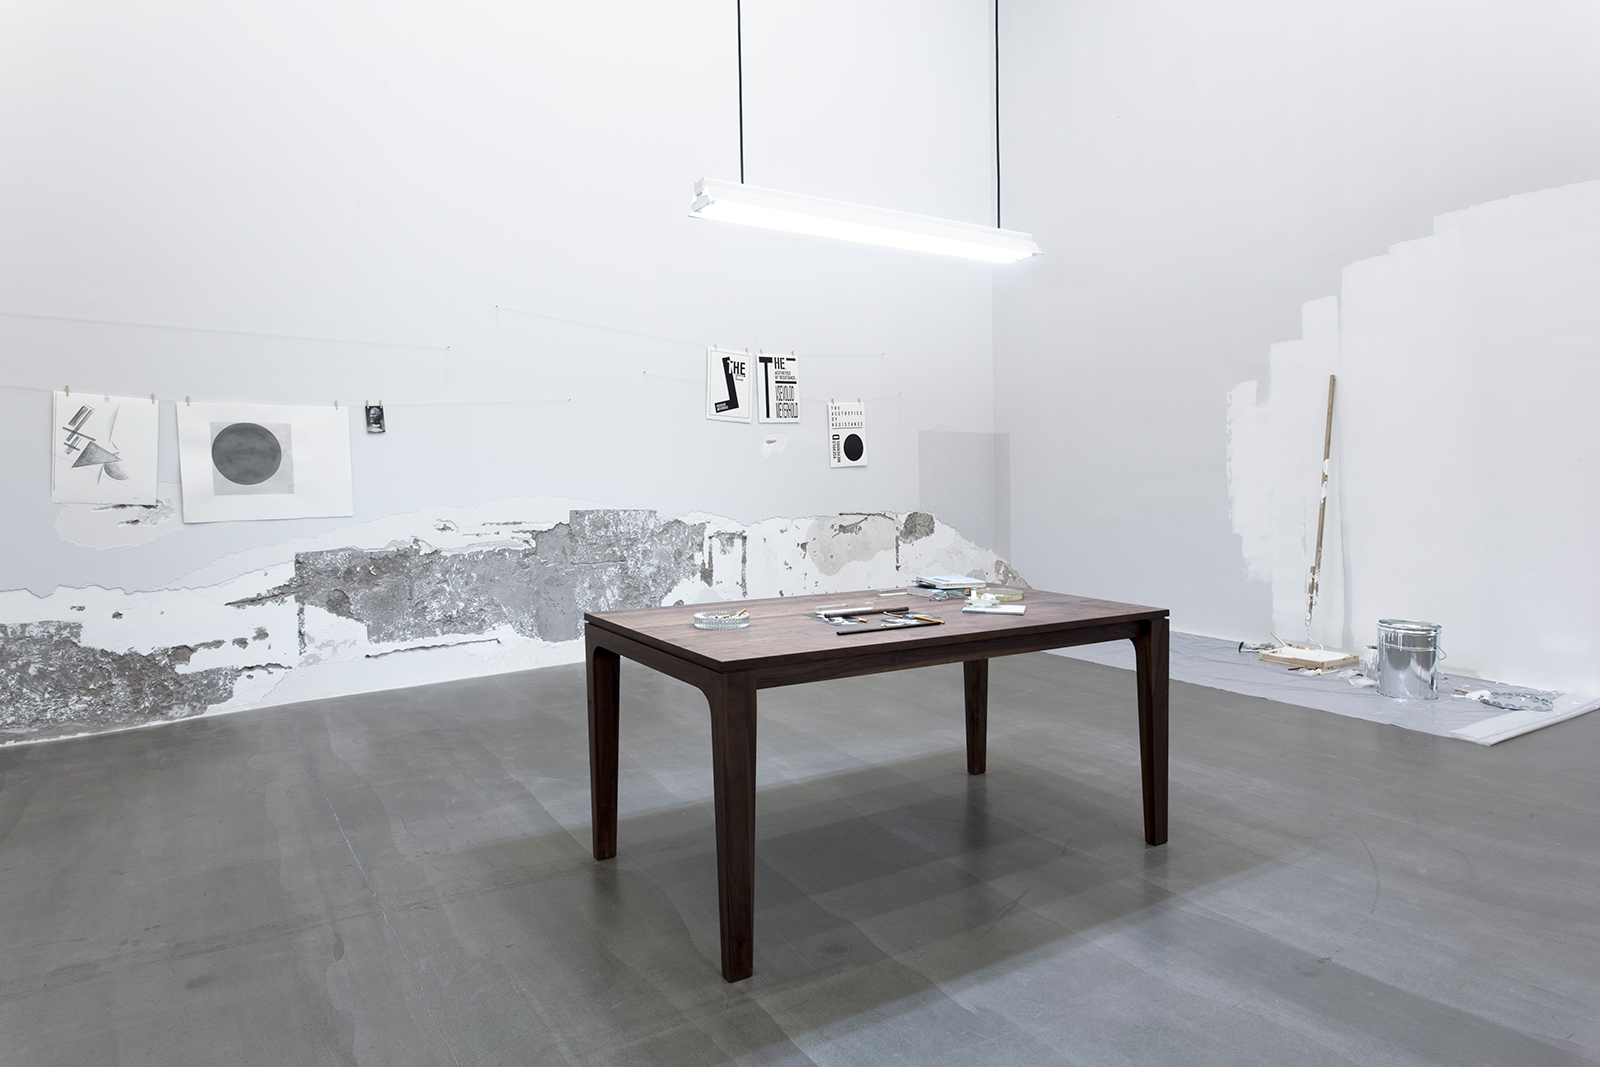 The Aesthetics of Resistance , 2015. Installation view, Galerie Urs Meile, Beijing, China, 2015.